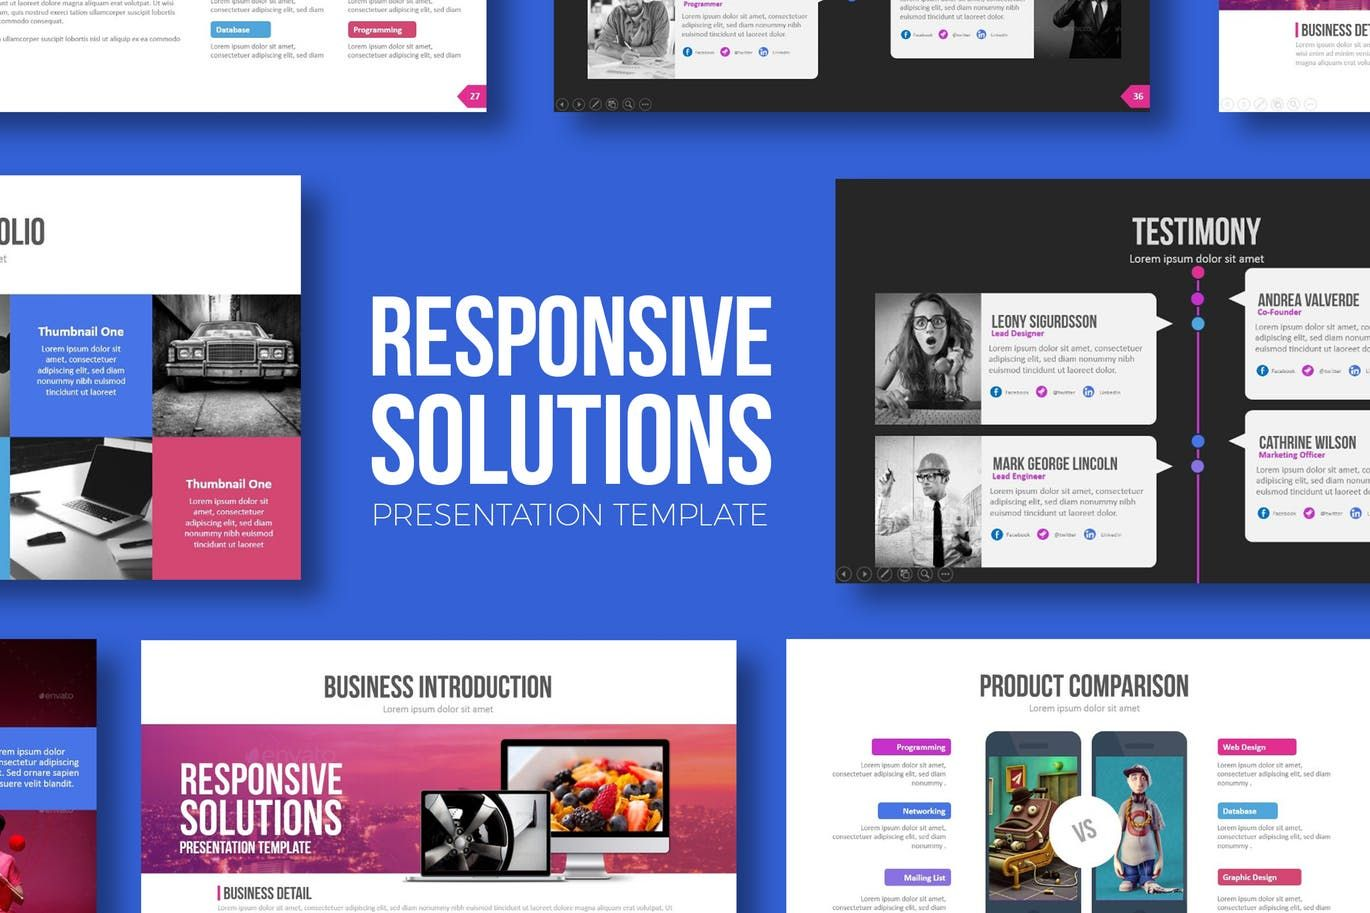 Responsive solutions powerpoint template by brandearth on envato responsive solutions powerpoint template by brandearth on envato elements toneelgroepblik Gallery